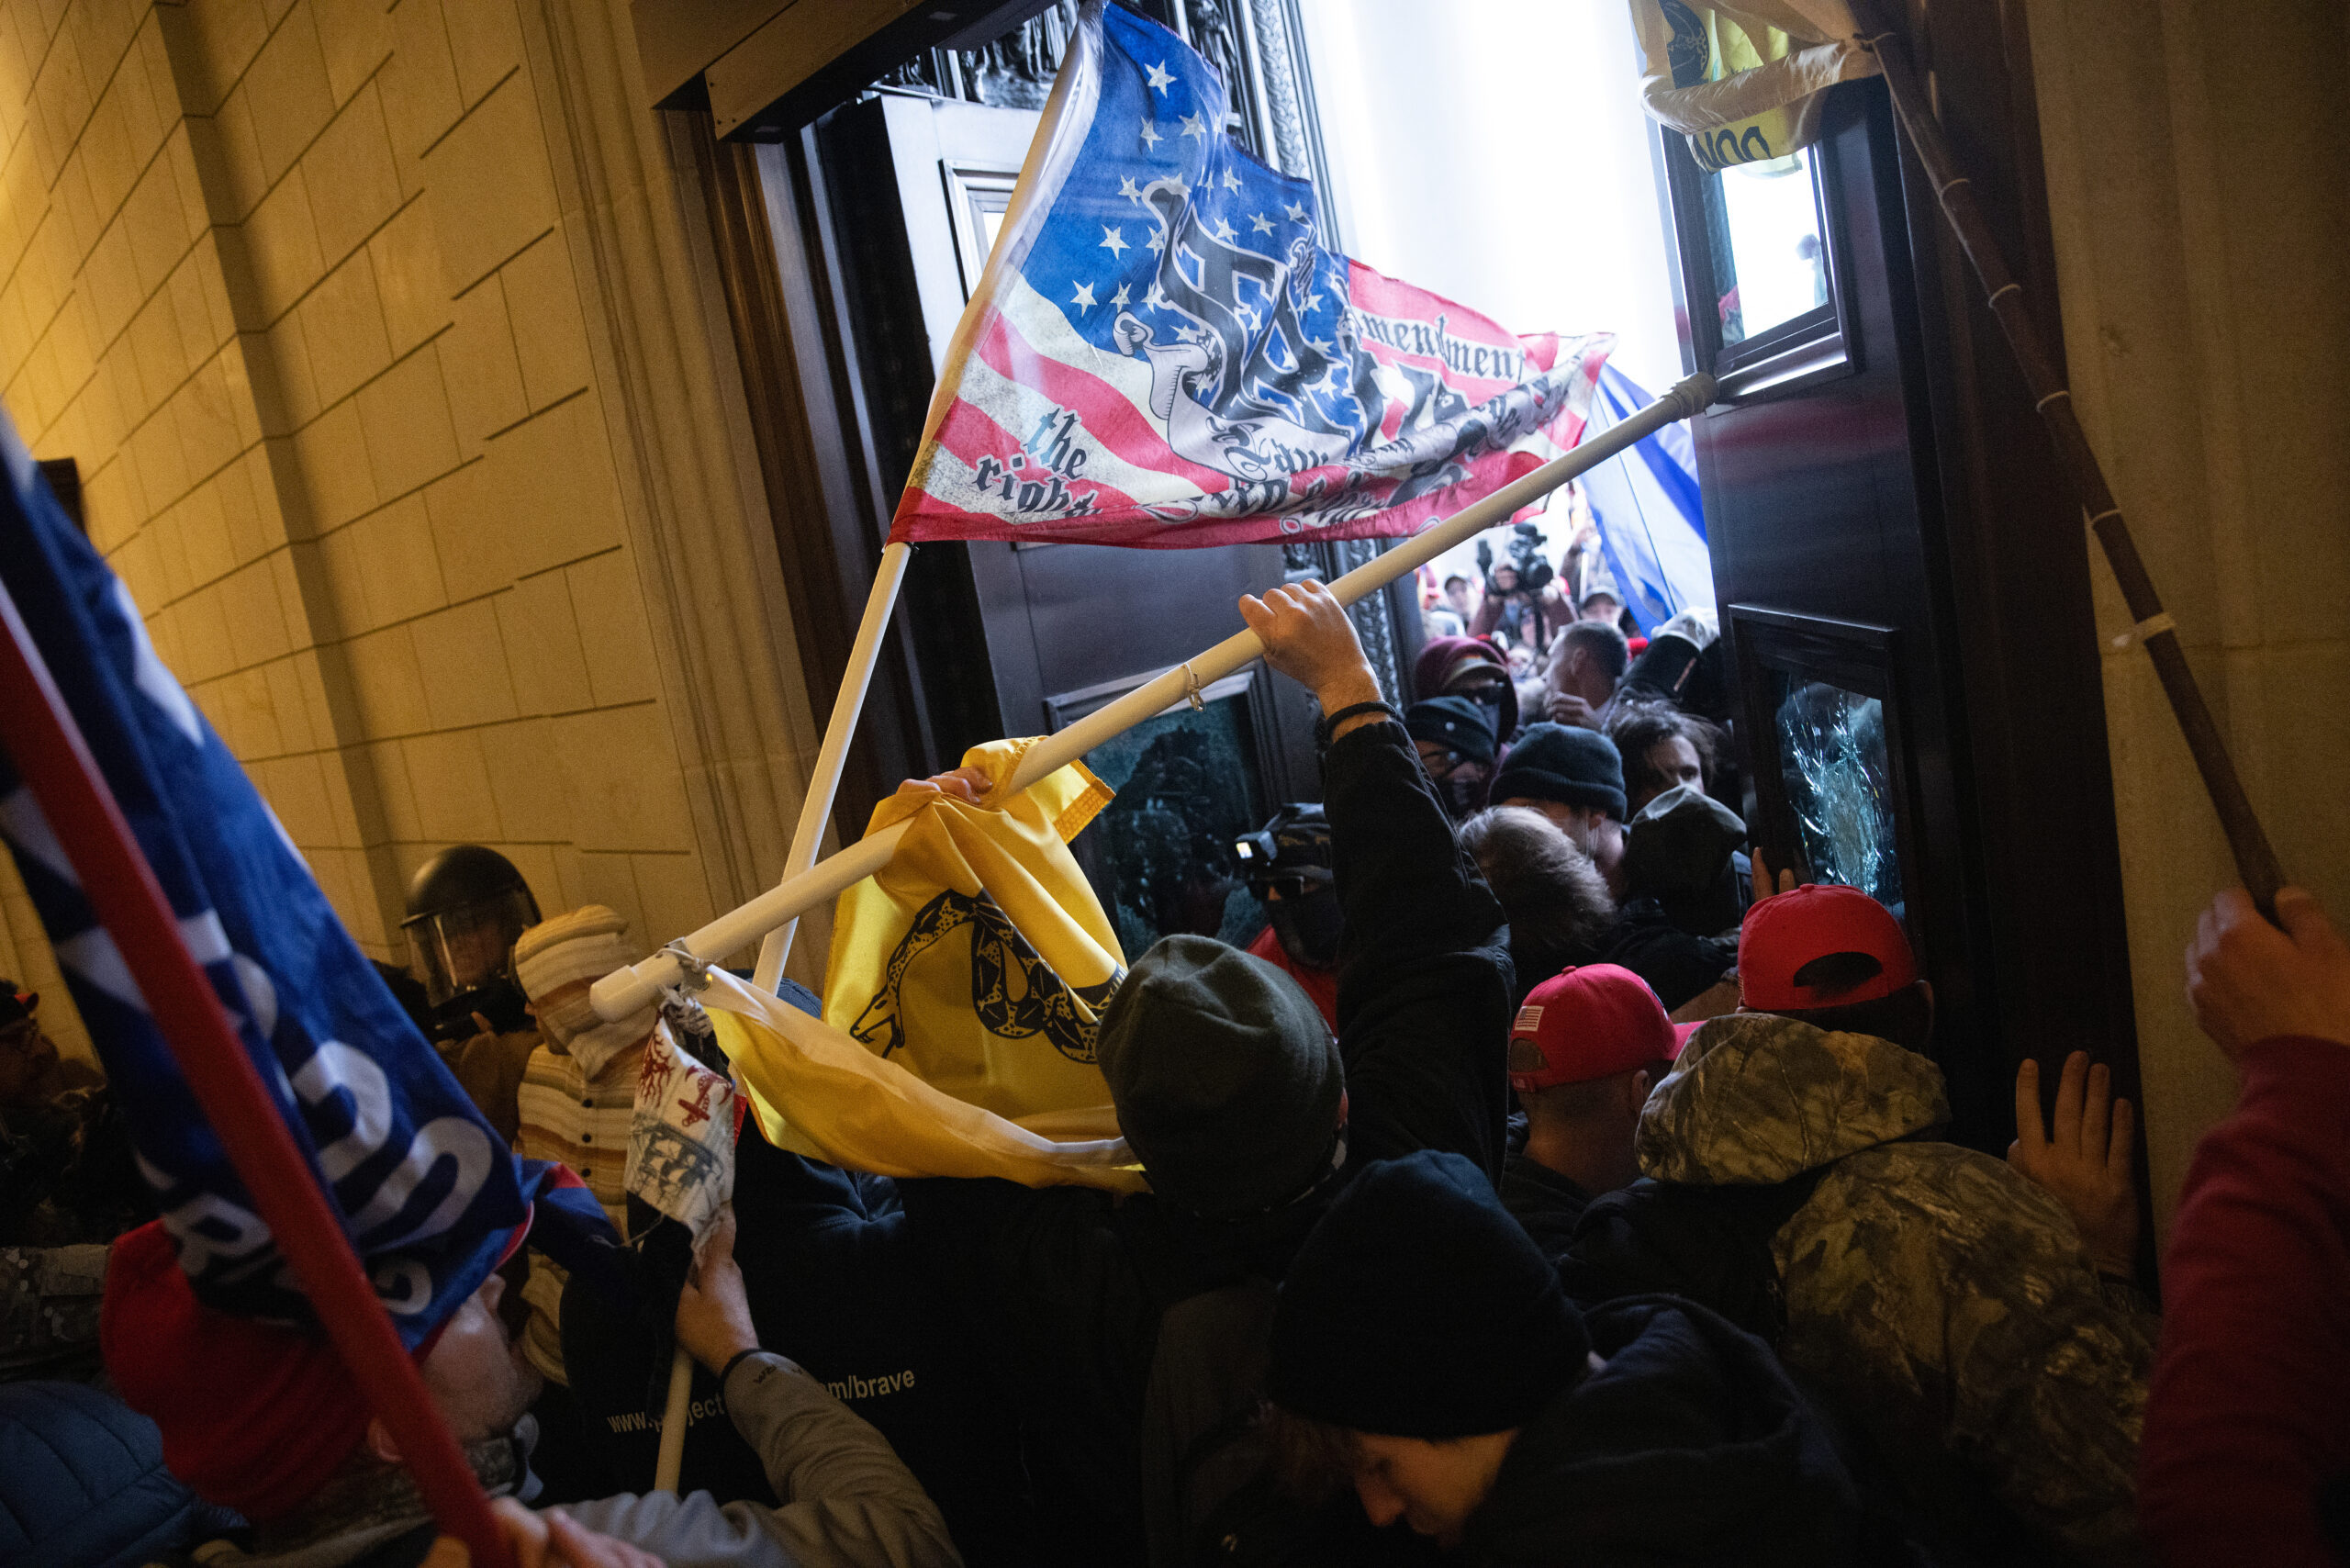 Capitol rioters could face penalties under this NAR policy